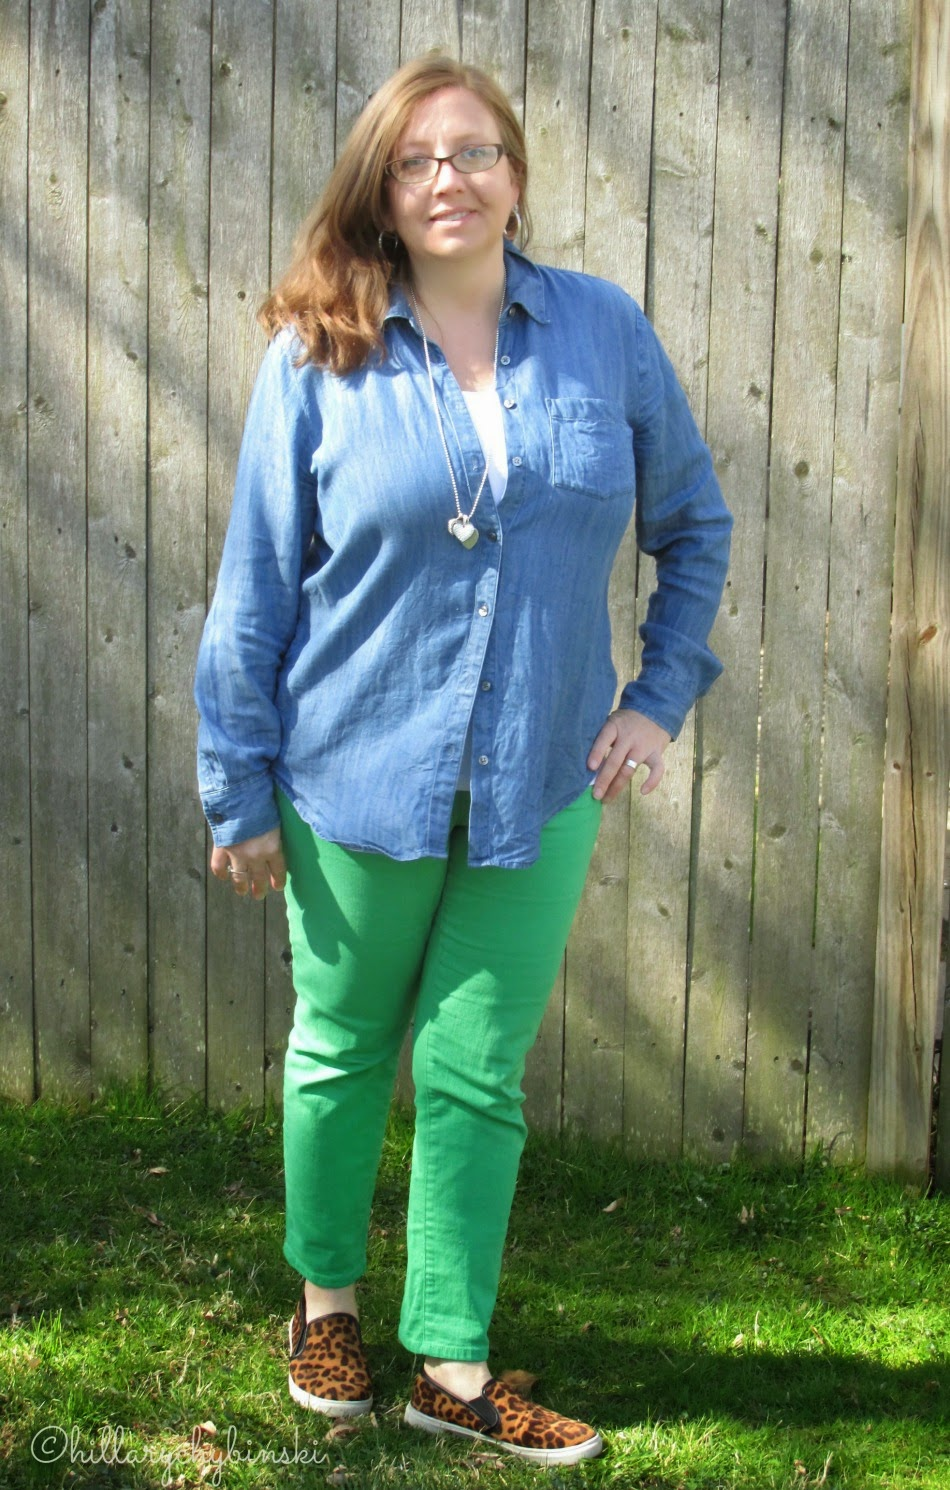 Colored Jeans Styled for Spring - Green Jeans with a Denim Top